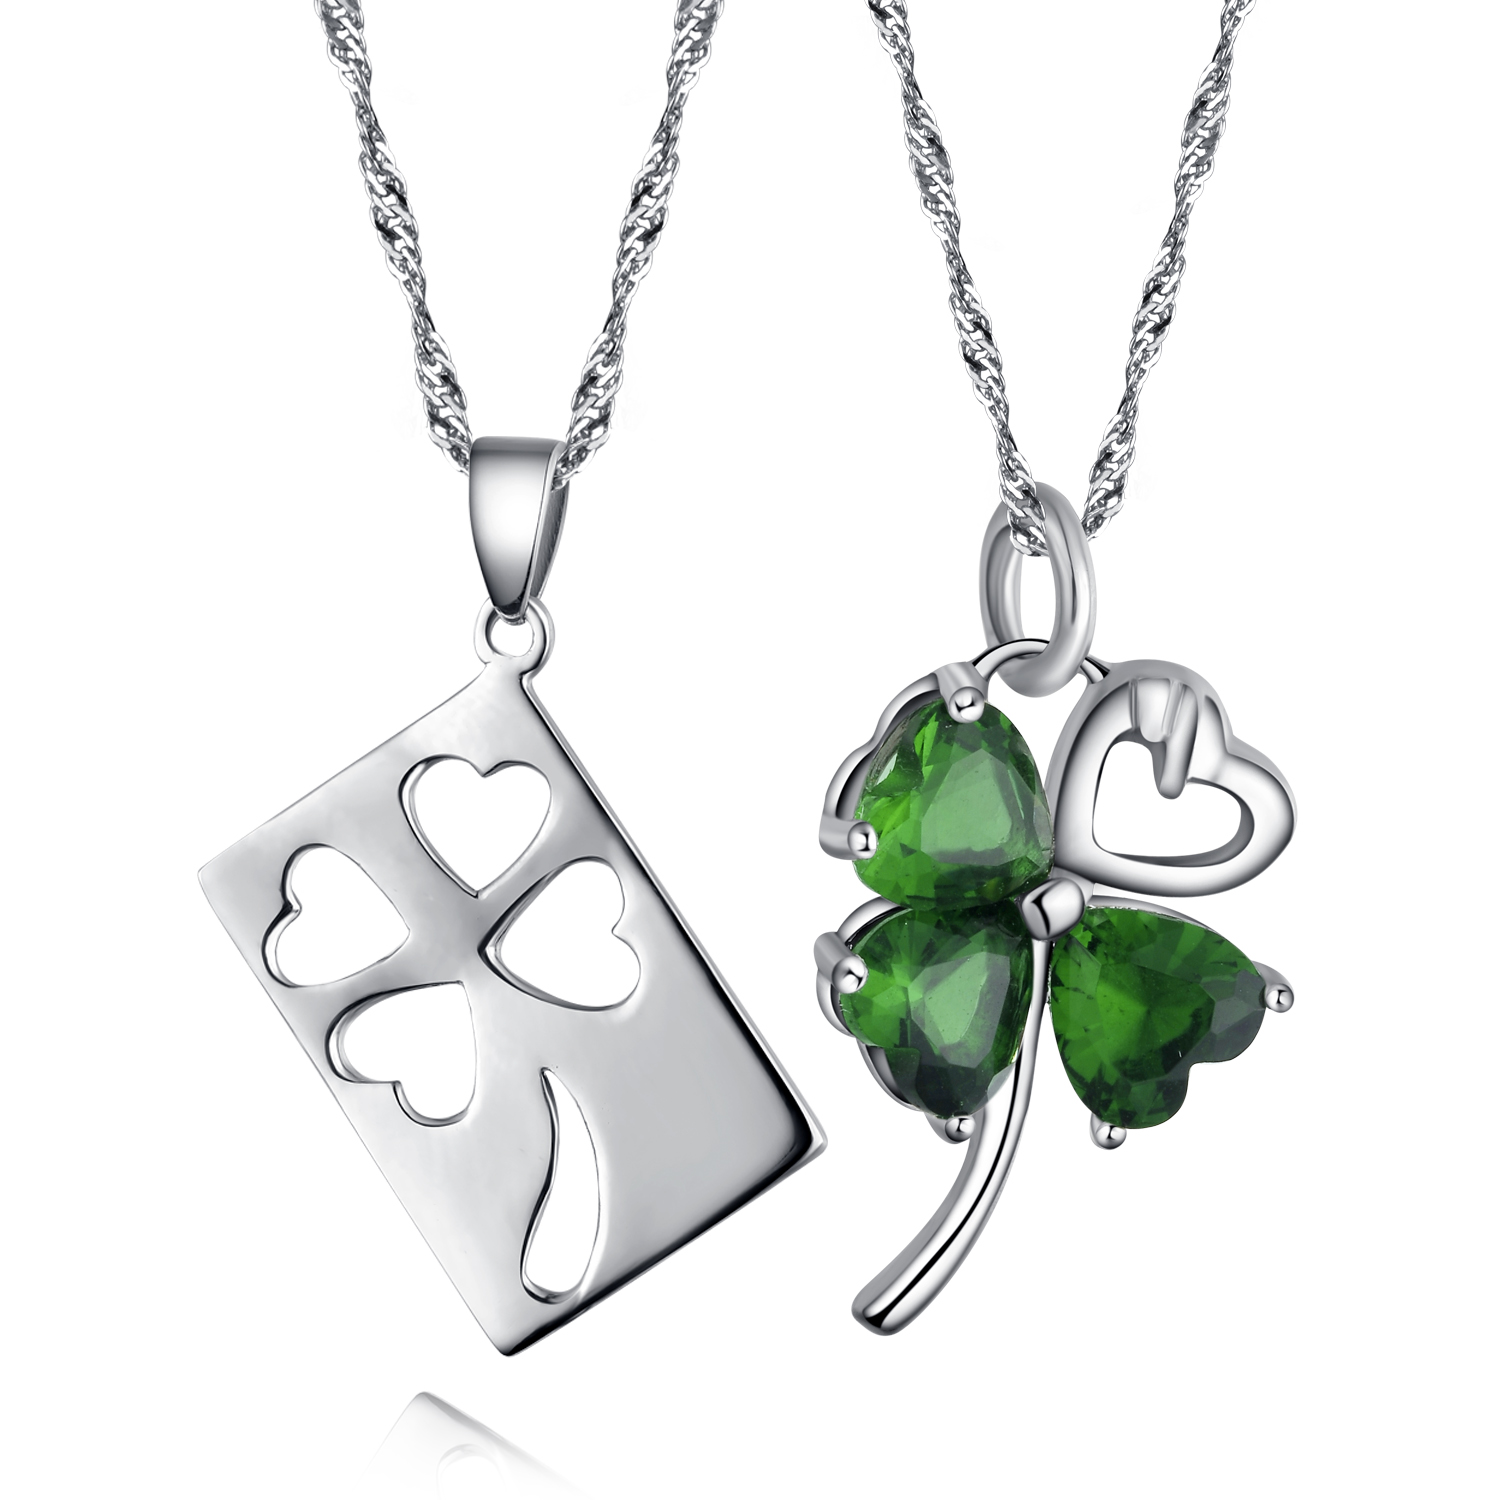 925 sterling couple lovers four leaf clover pendants necklaces and 1 original aloadofball Image collections